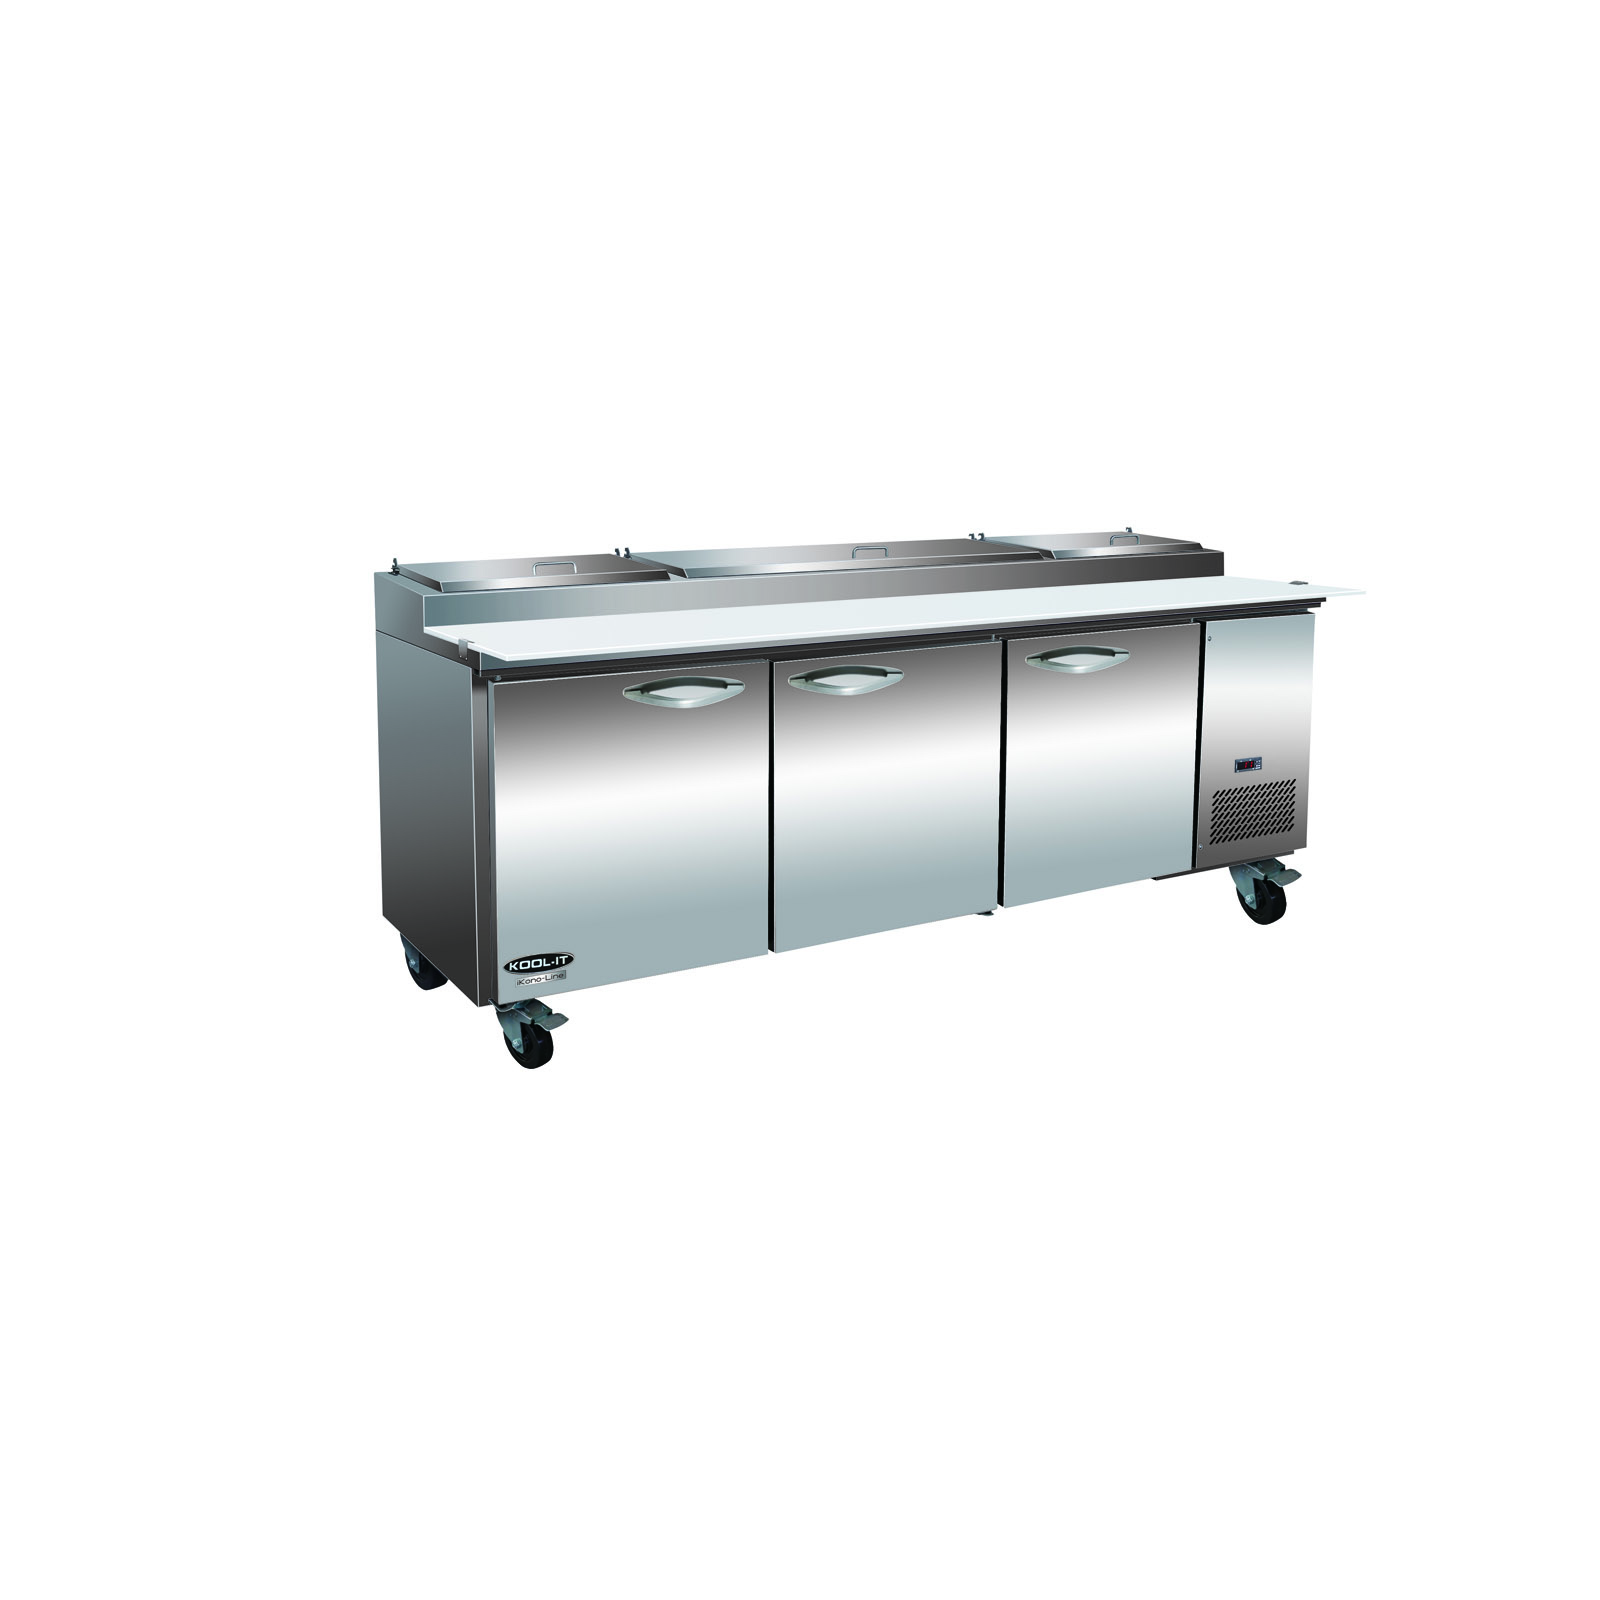 MVP IPP94-4D refrigerated counter, pizza prep table